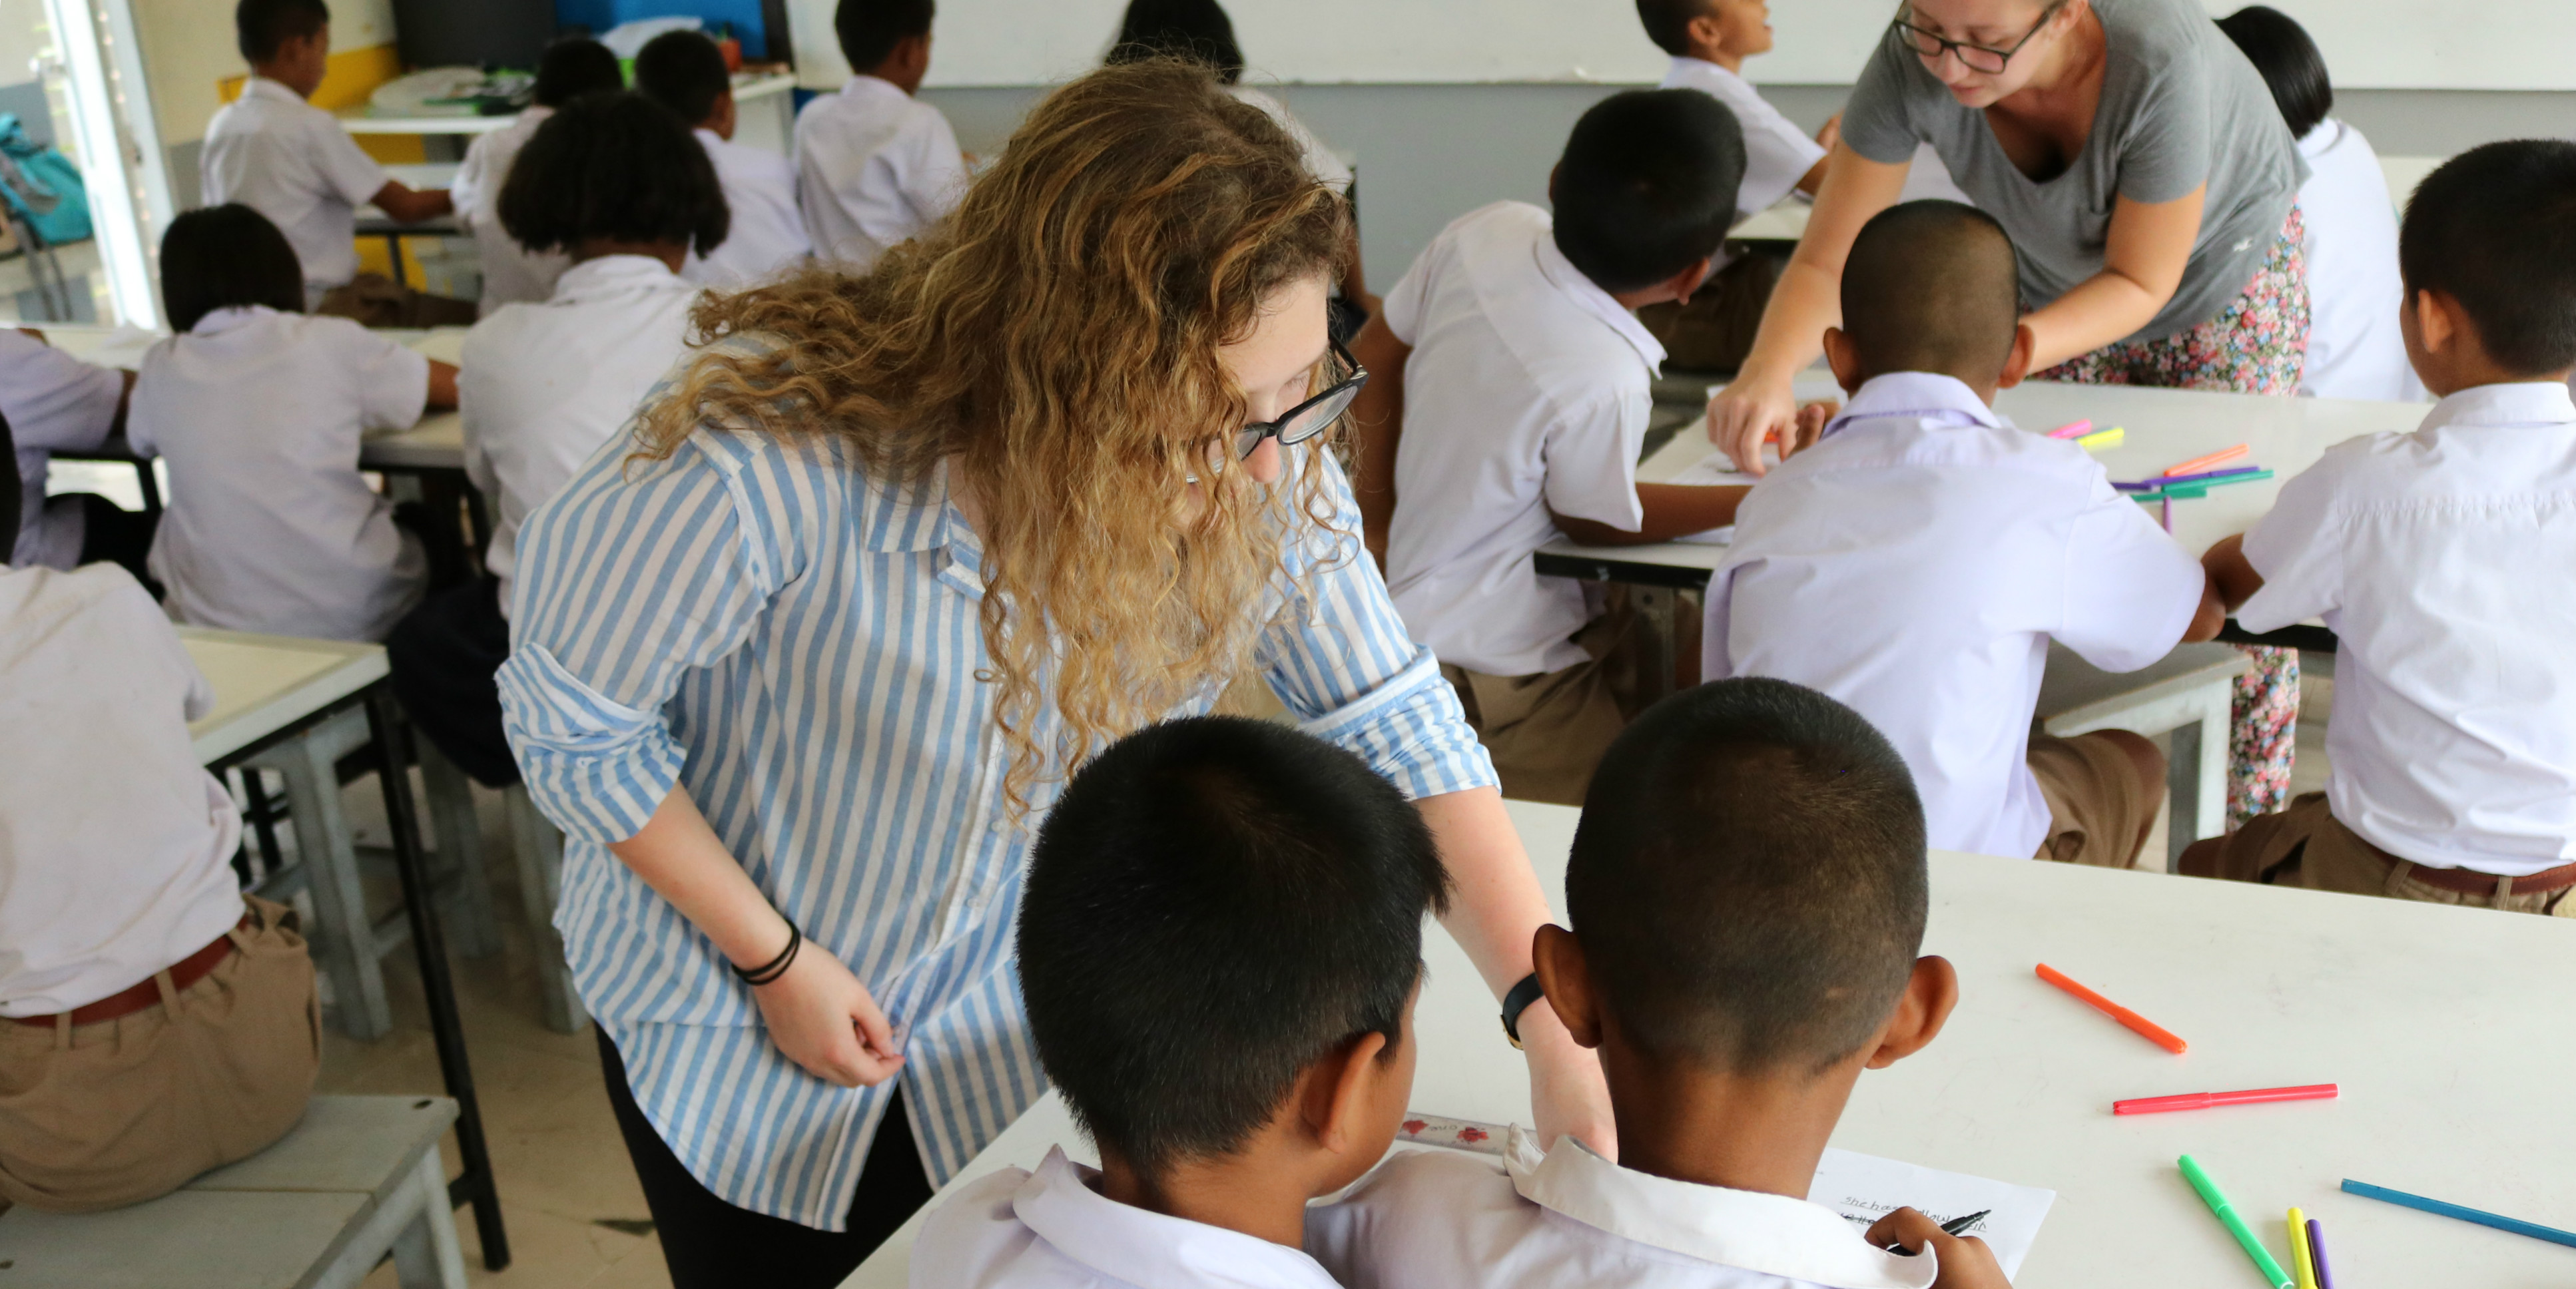 After completing their TEFL training with GVI, a participant assists learners in a school in Thailand.